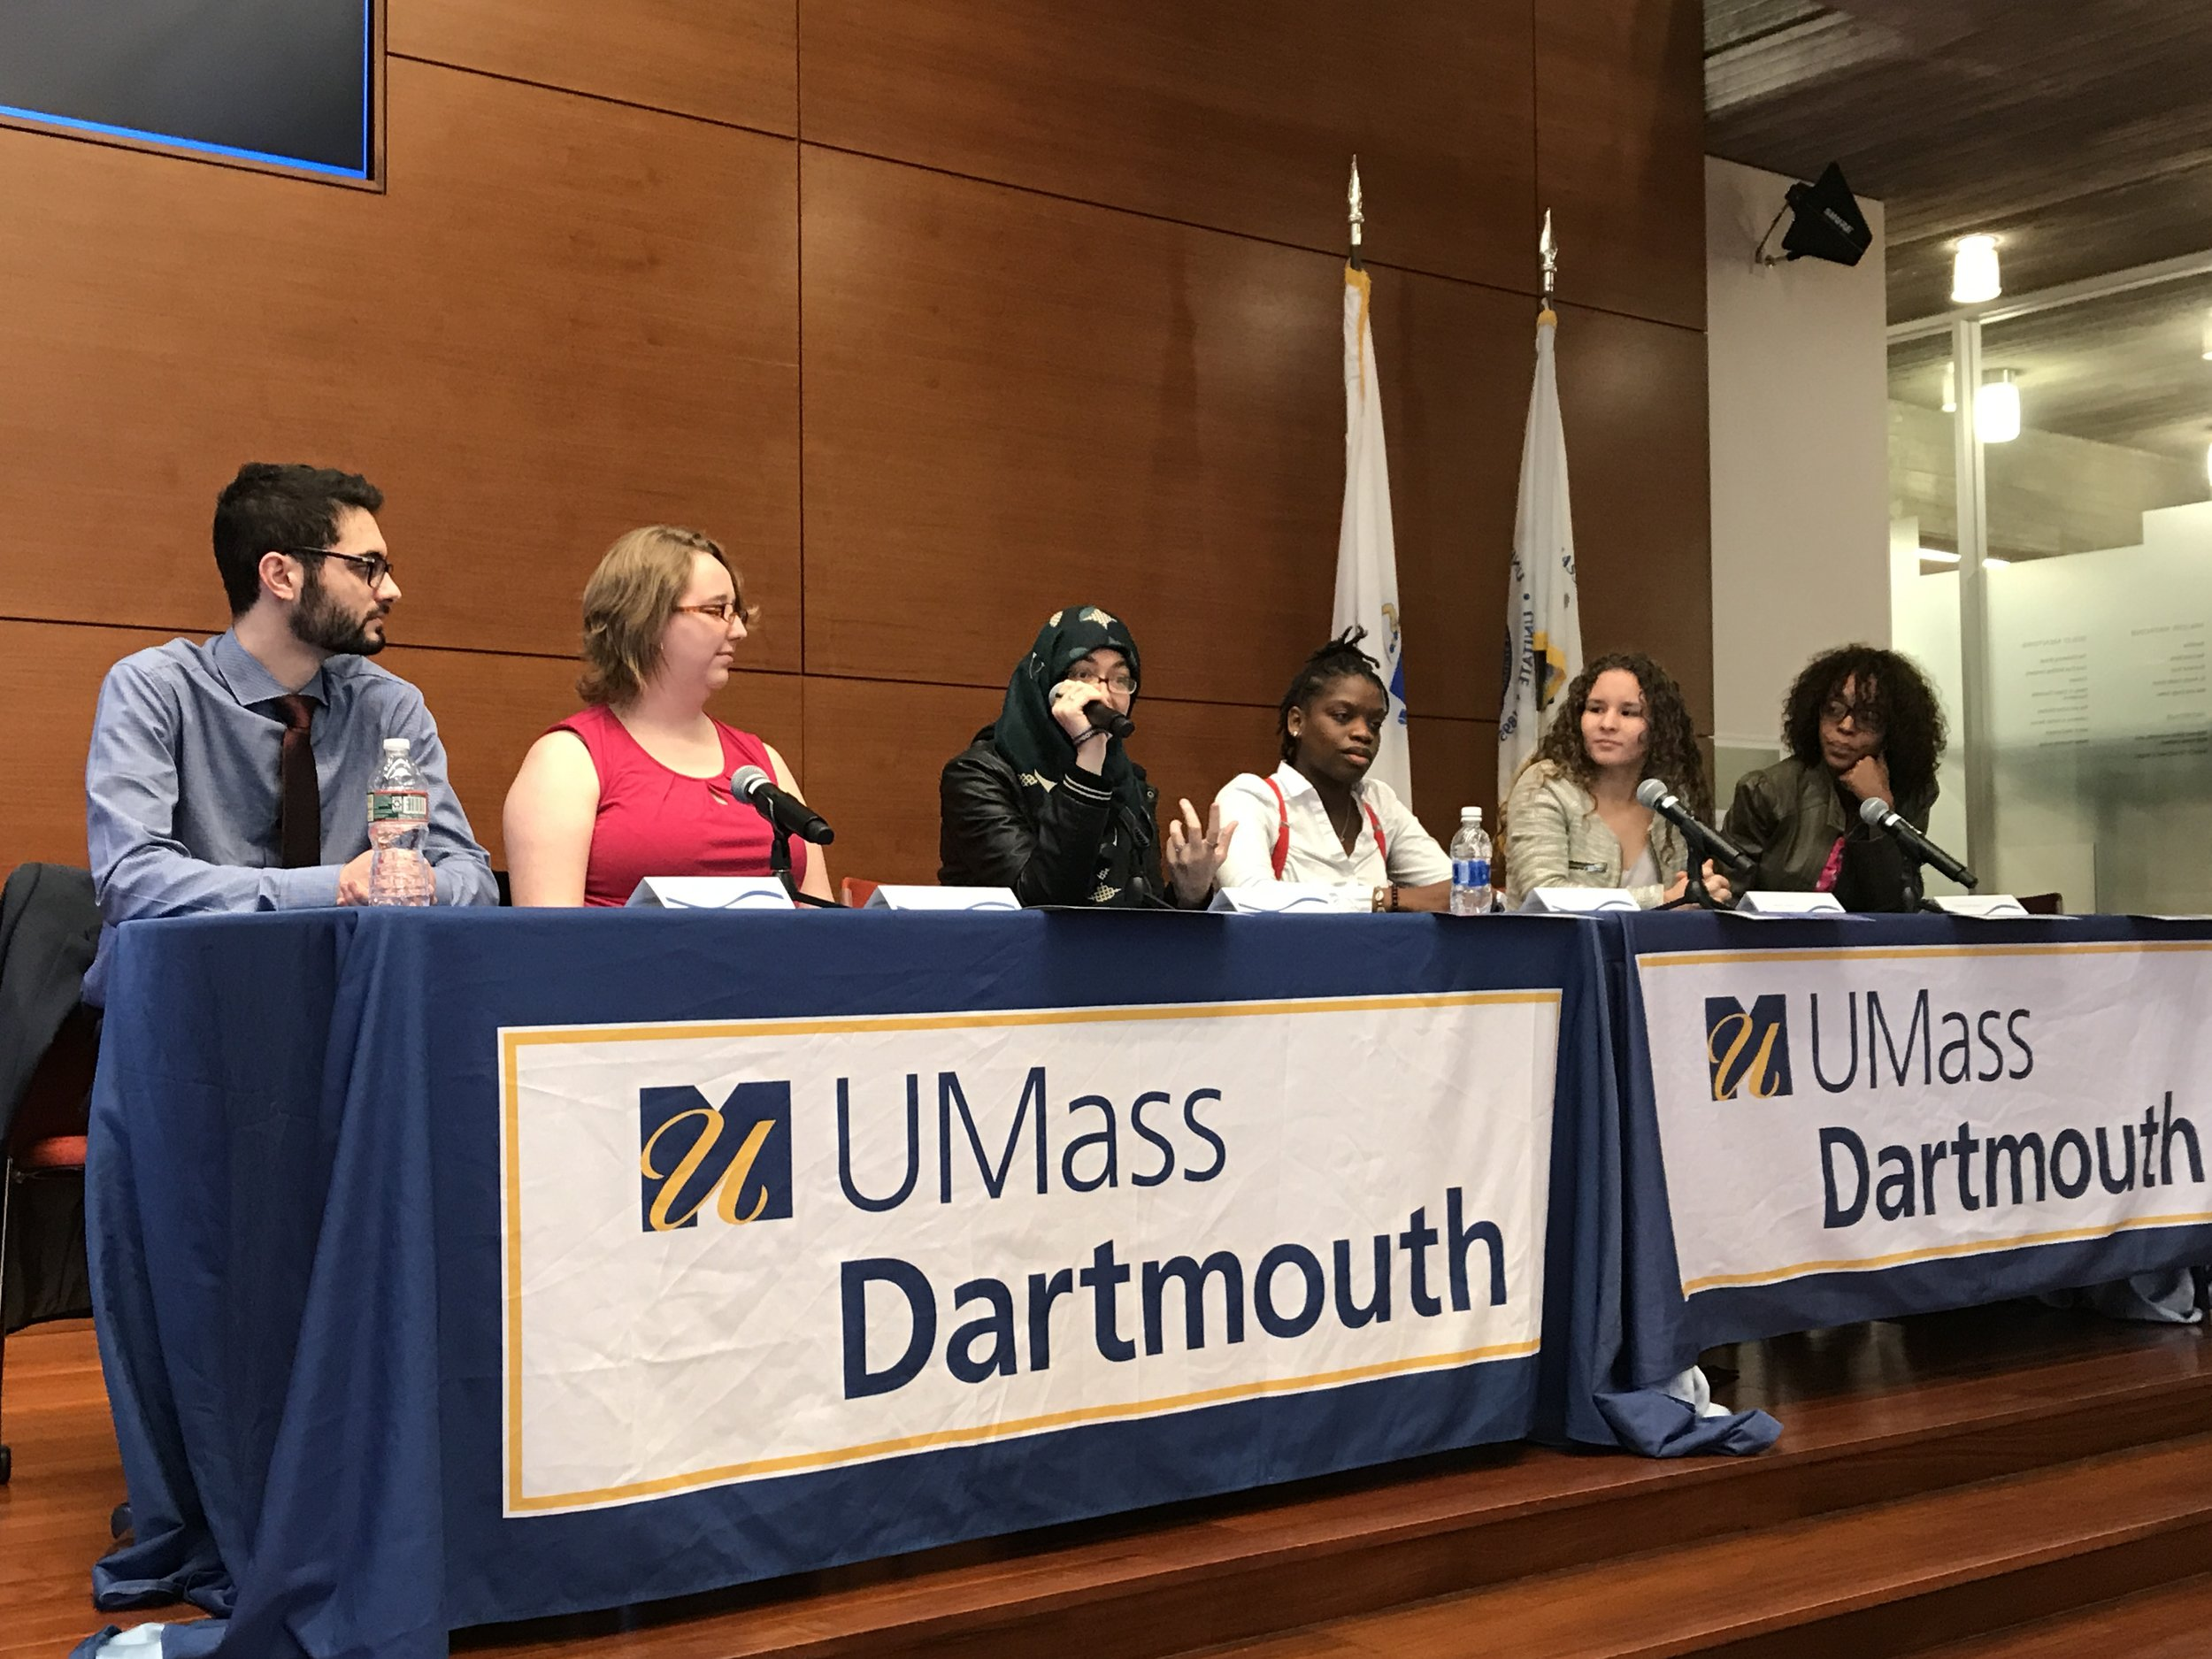 There was a great panel about Shared Voices featuring some of the students who participated. They discussed their views on social justice and making space for political dialogues.